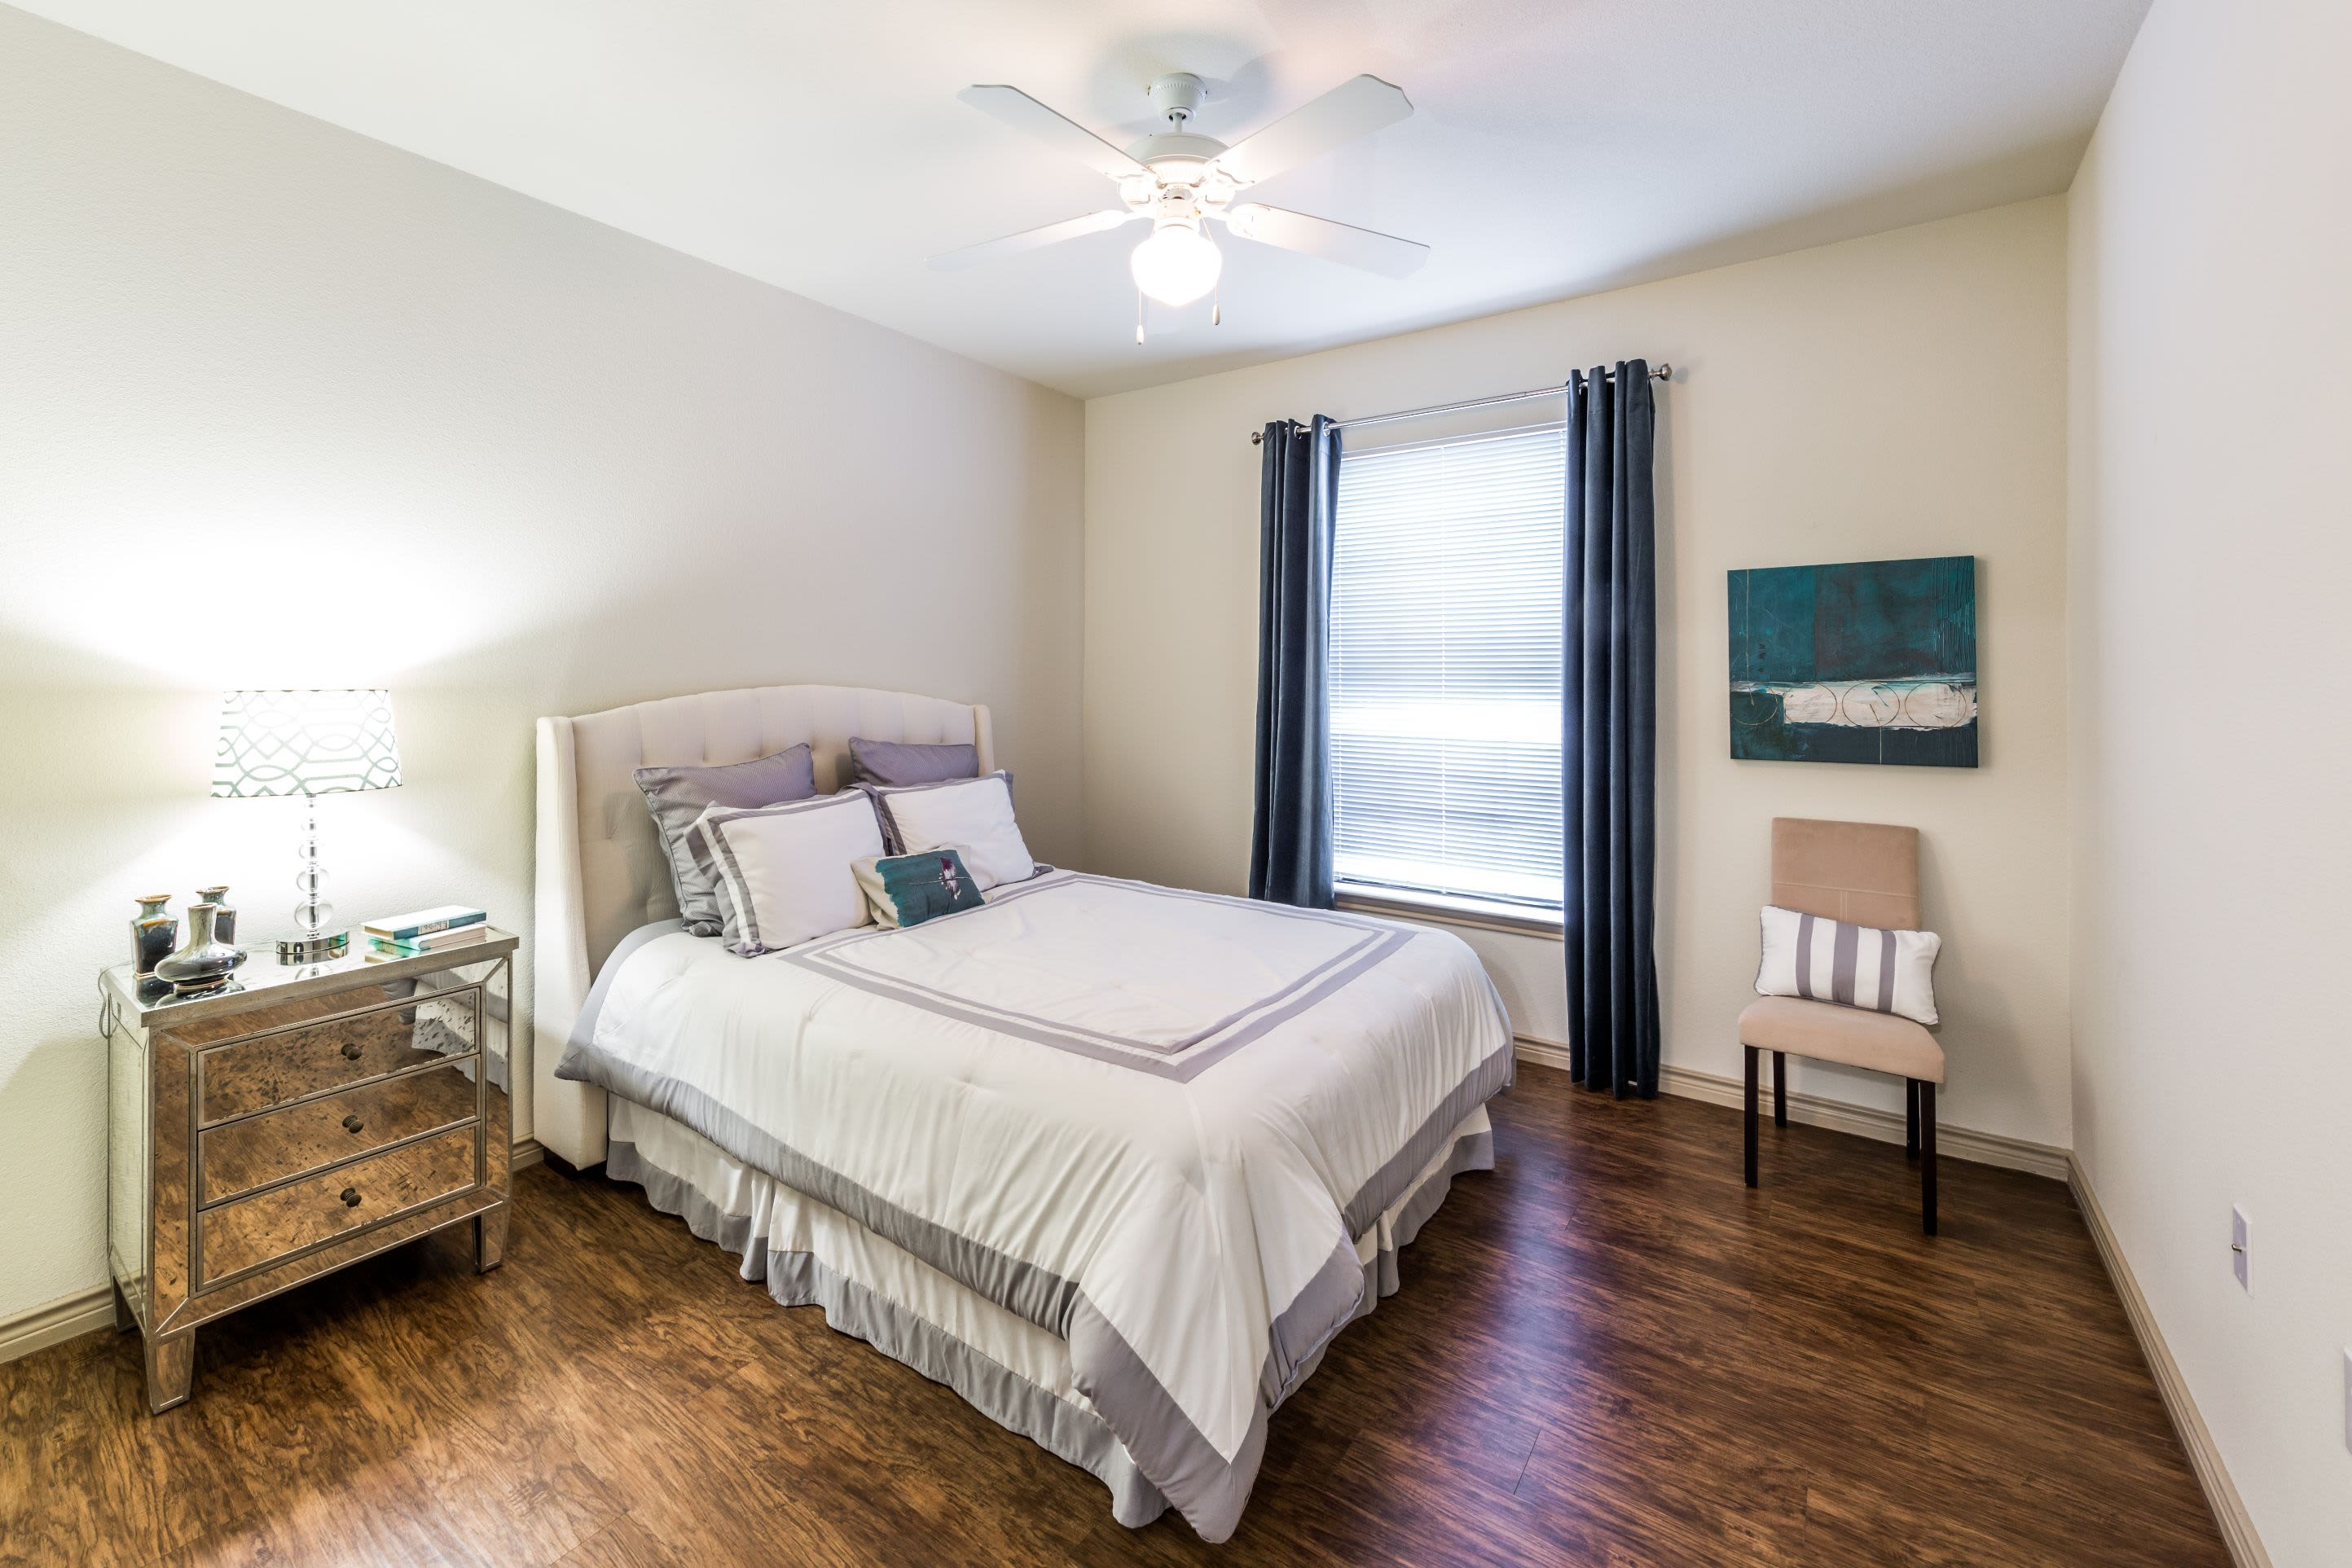 Bright and cheerful bedroom with wood flooring at The Marquis at Brushy Creek in Austin, Texas